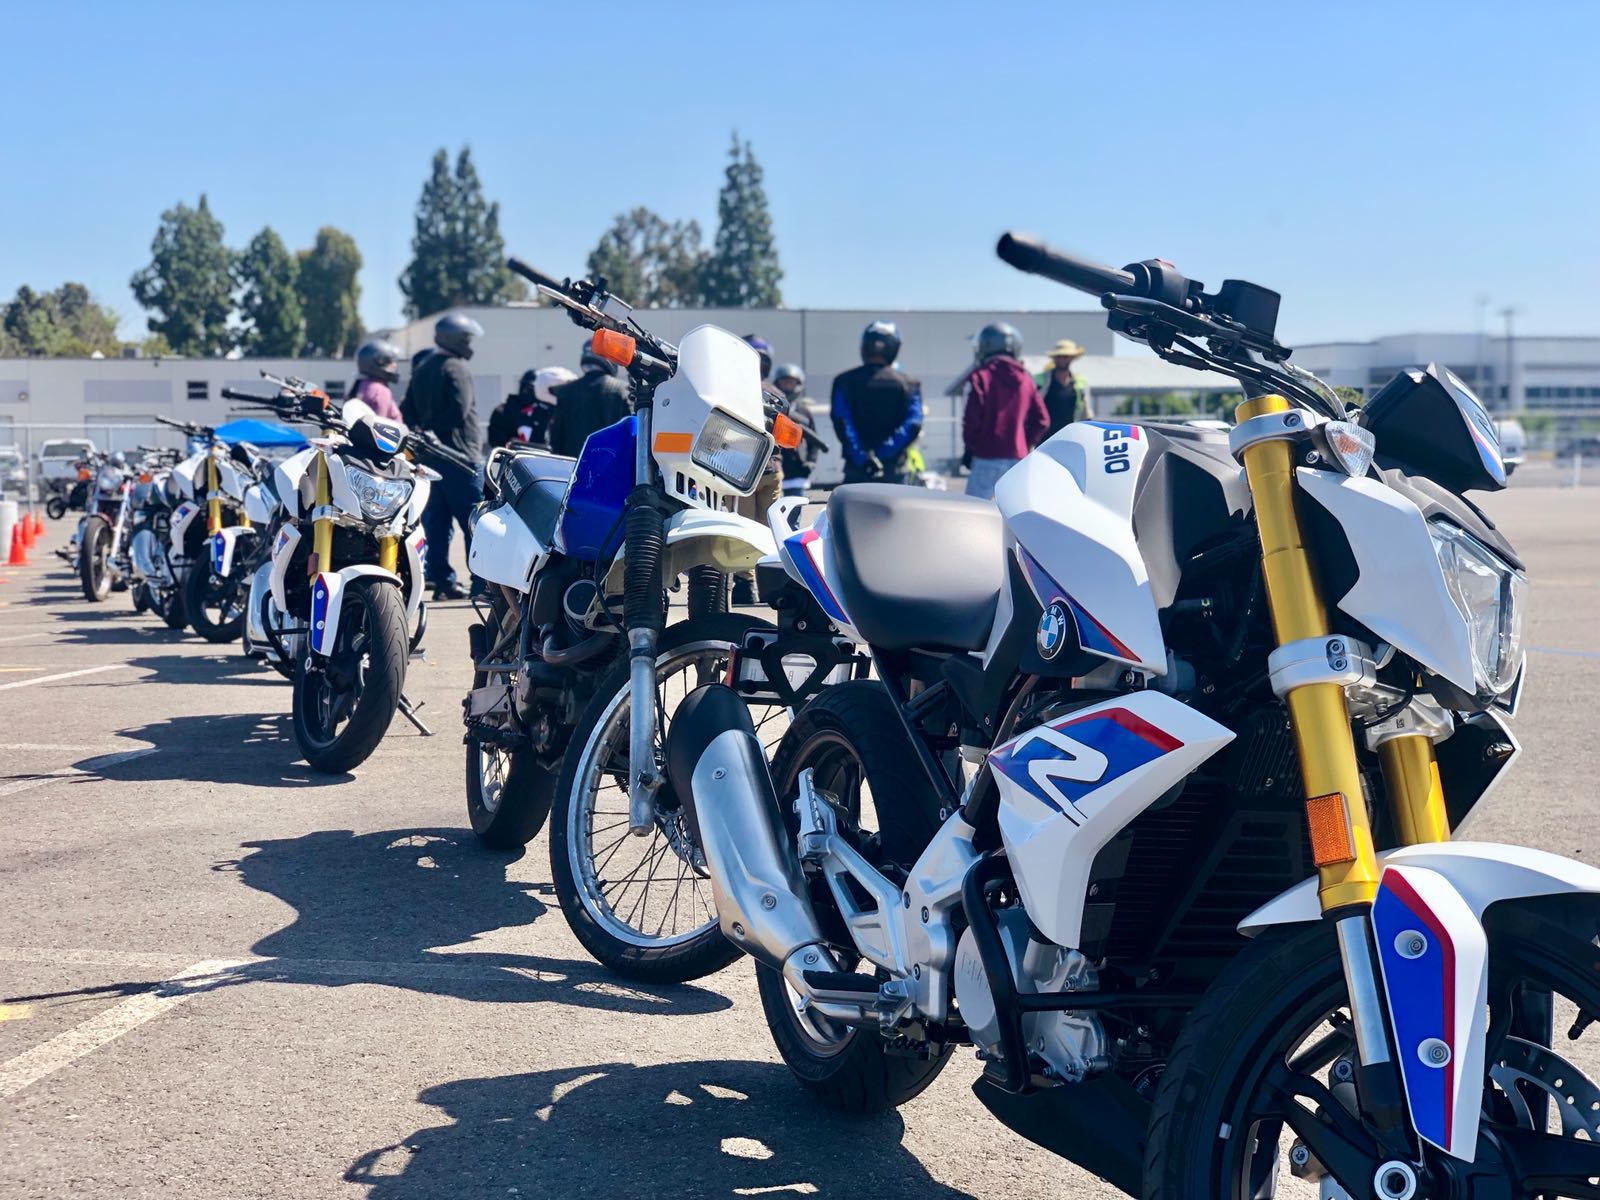 The BMW G 310 R has been added to Westside Motorcycle Academy's fleet of training motorcycles